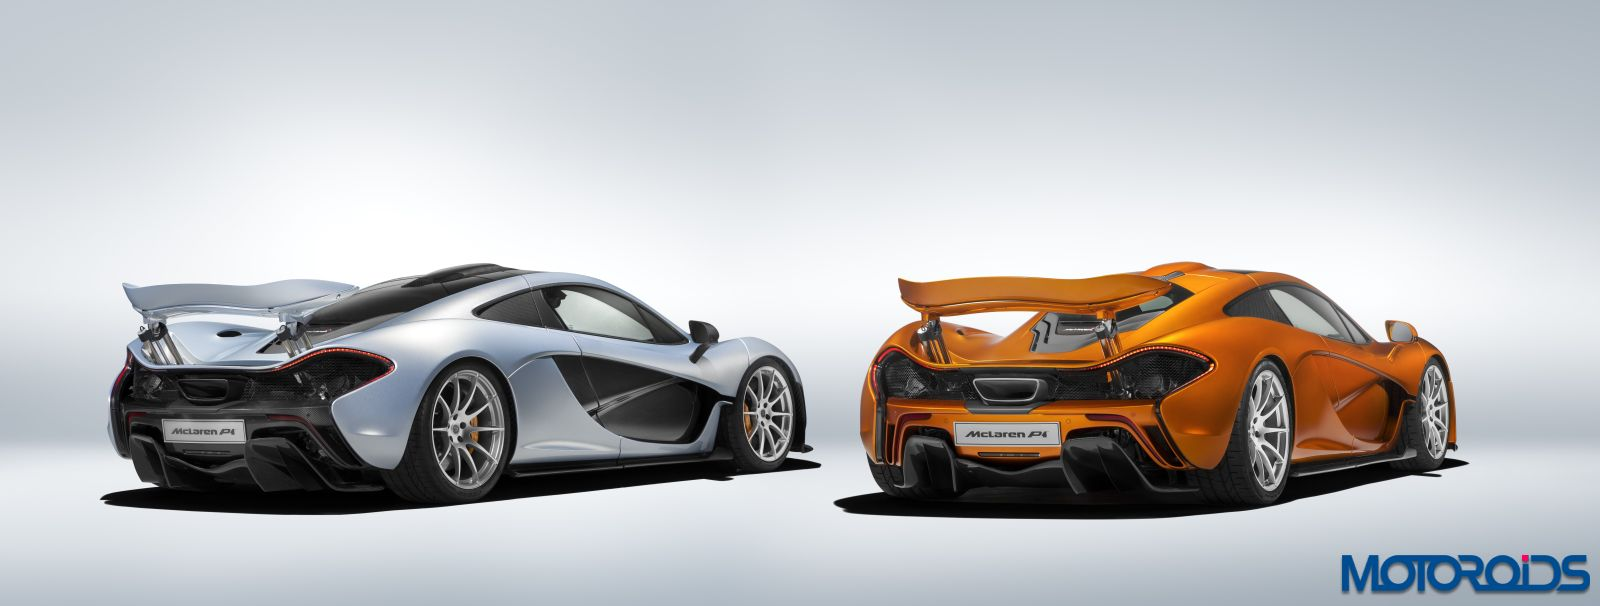 mclaren-brings-the-curtain-down-on-the-p1-photo-gallery_2